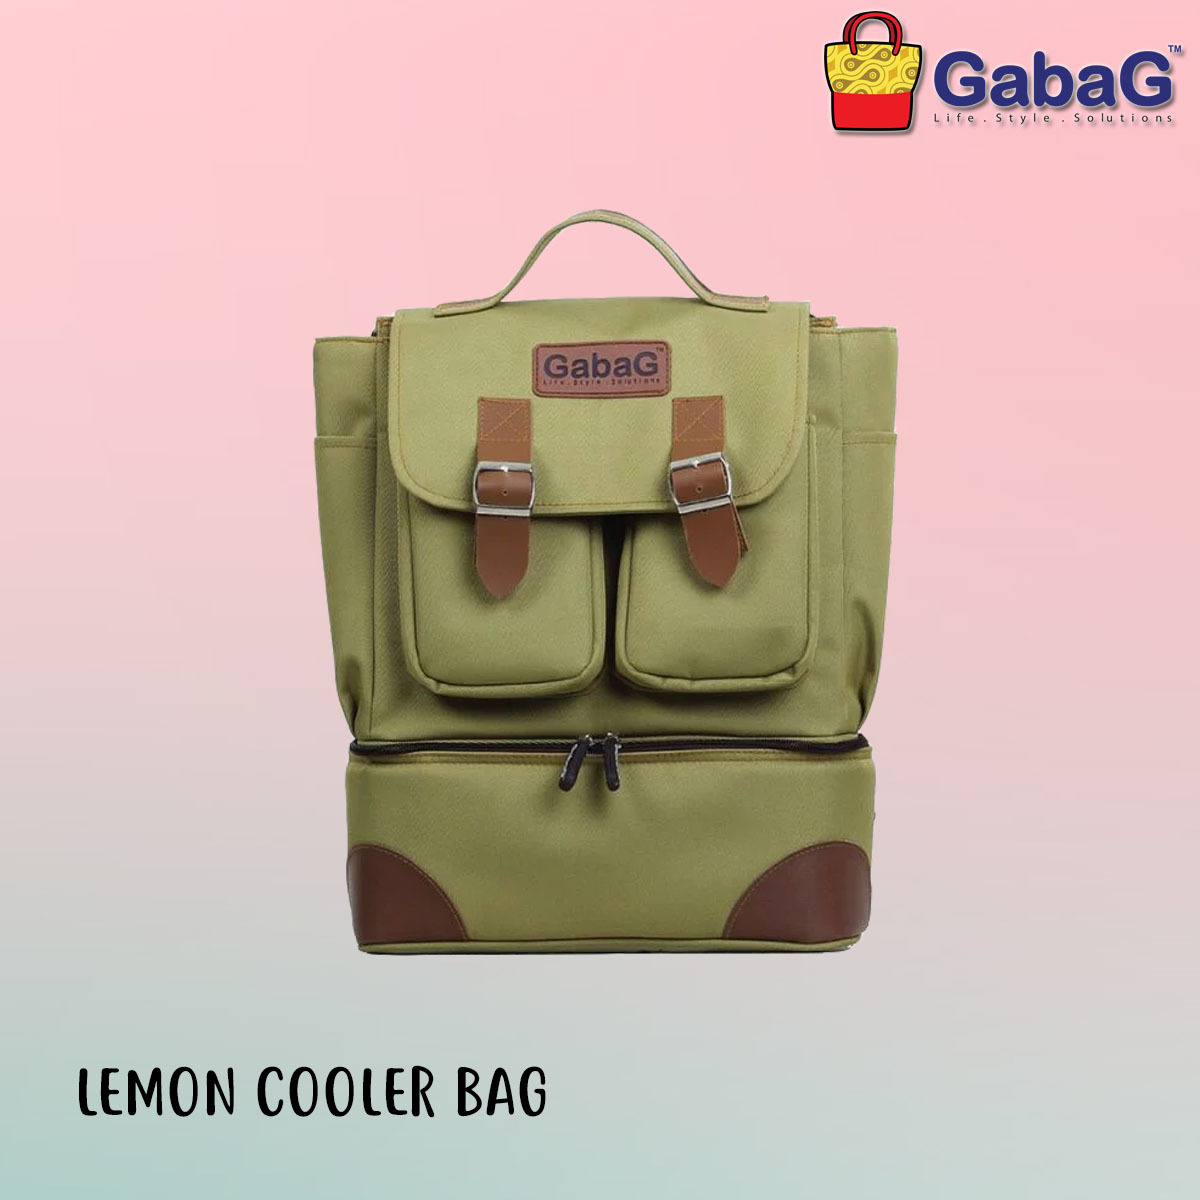 Lemon Cooler Bag.jpg